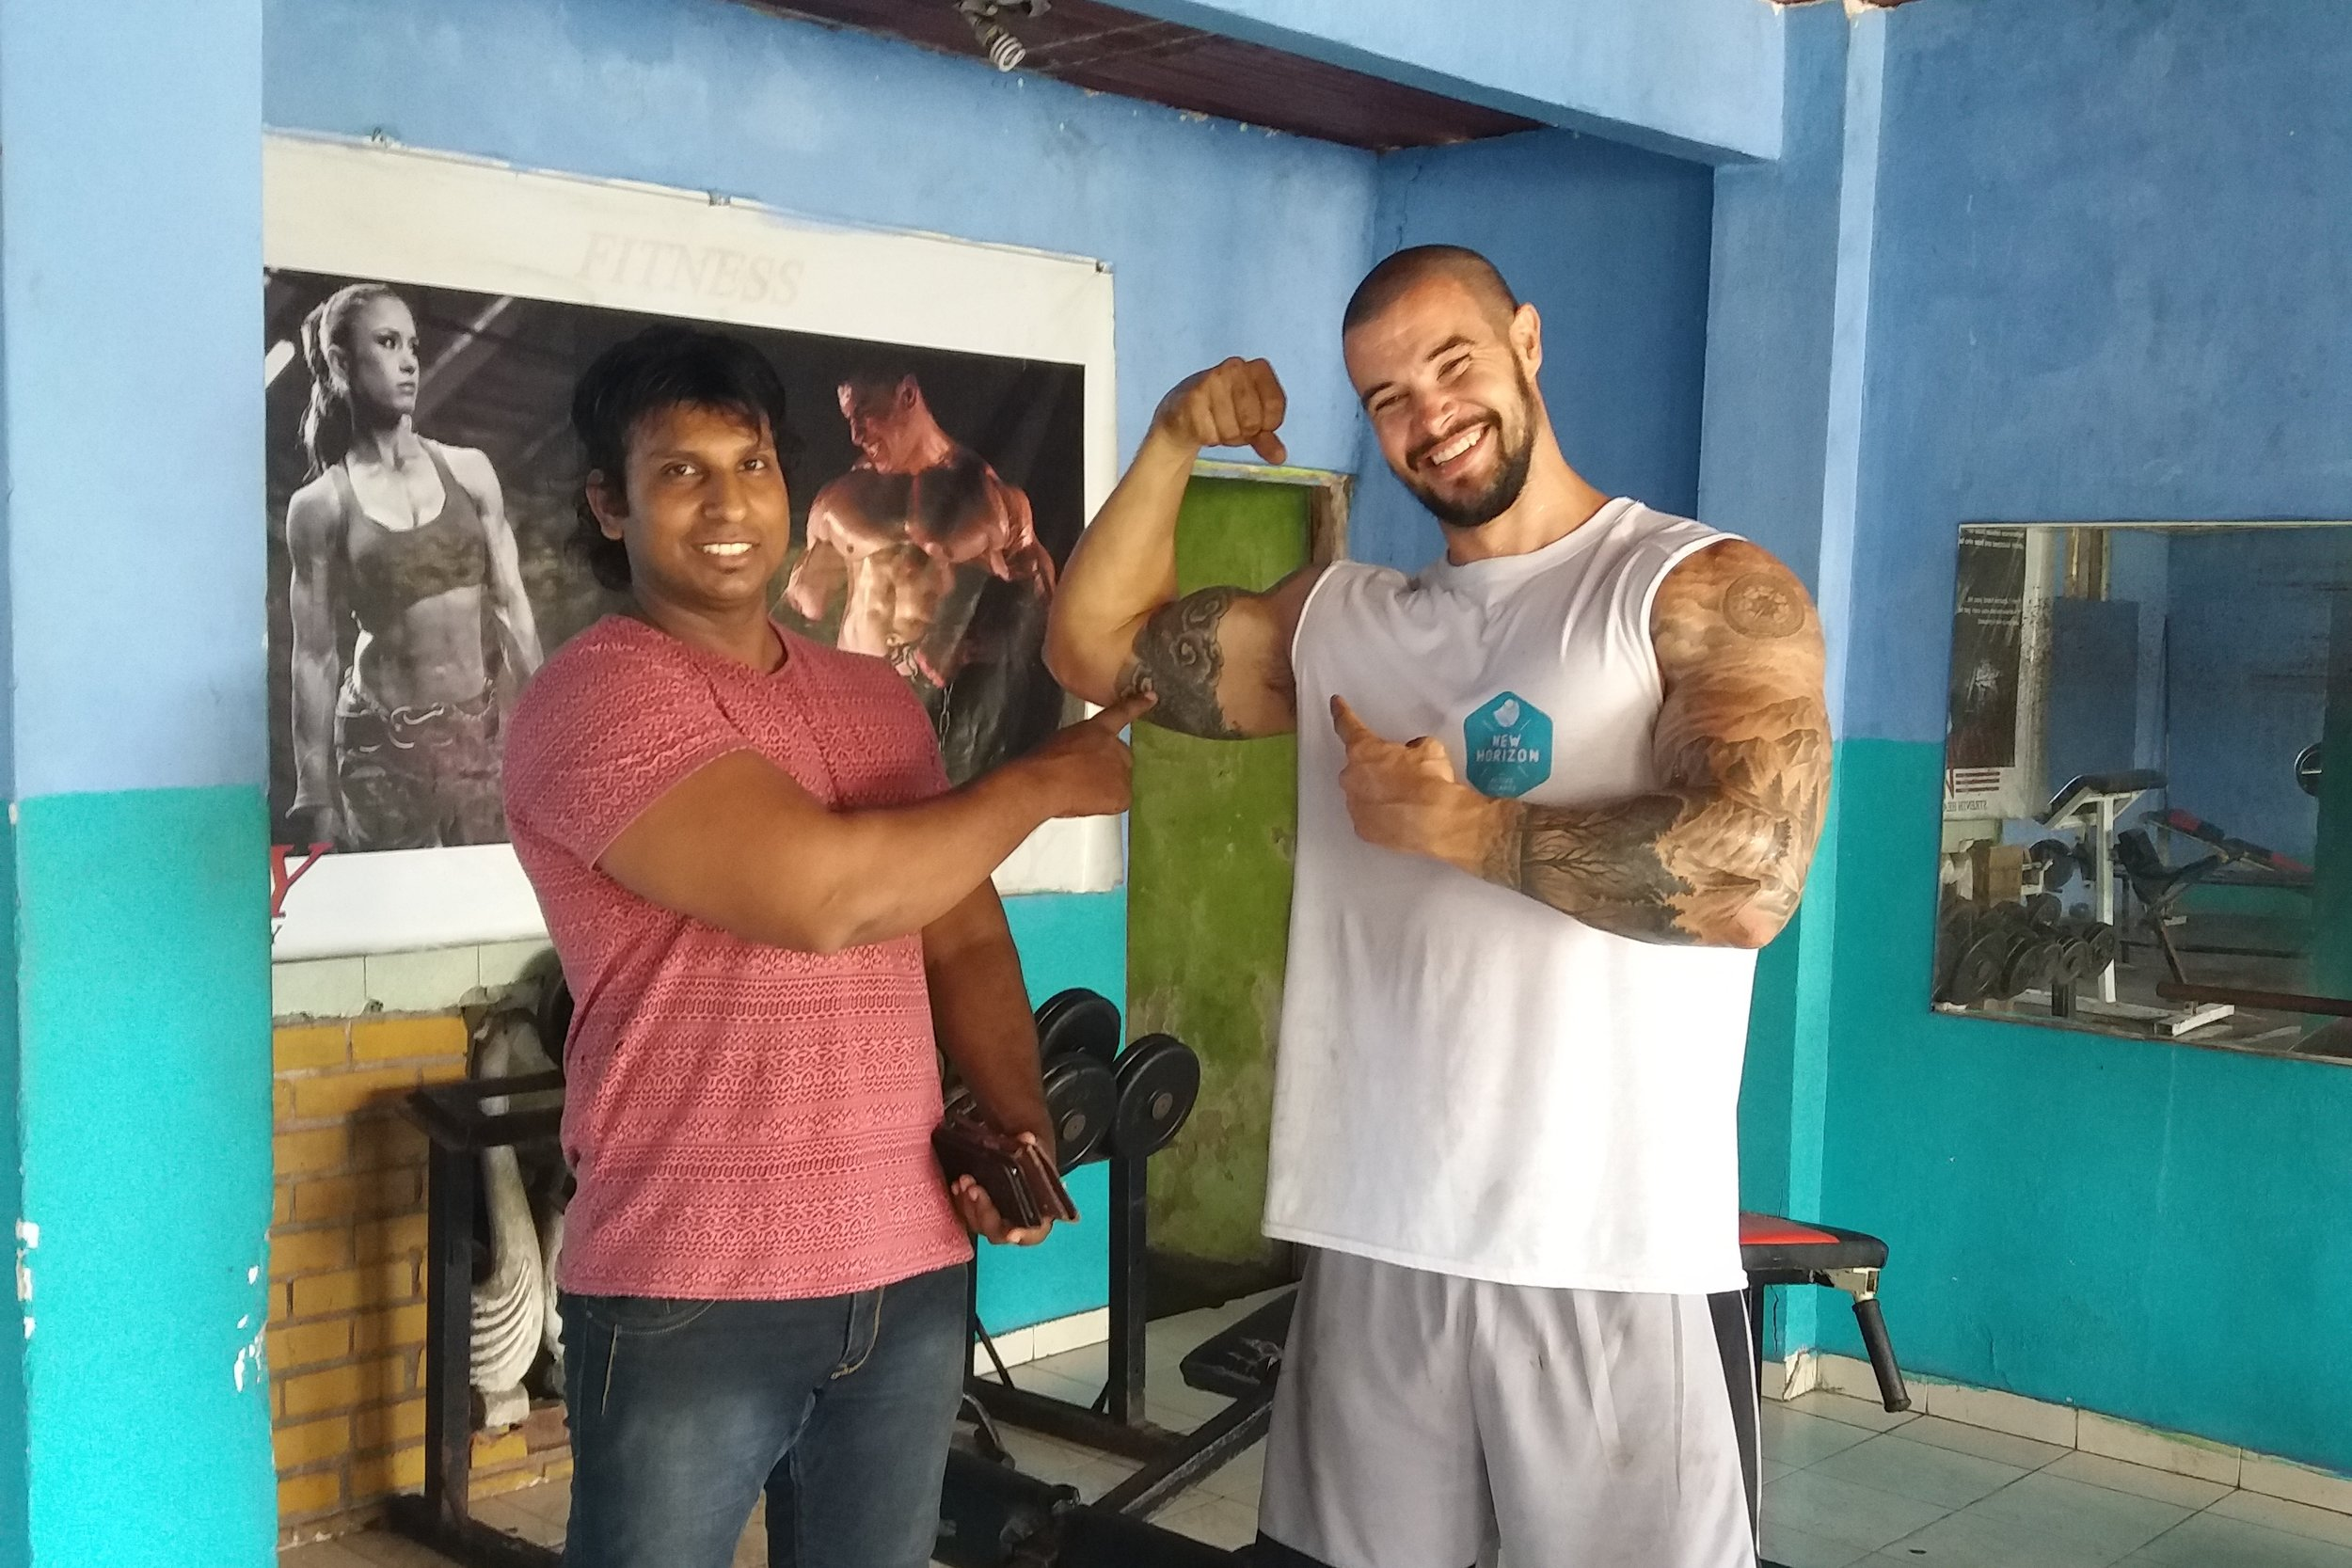 The local gym owners were very welcoming and always wanted a photo op before we left